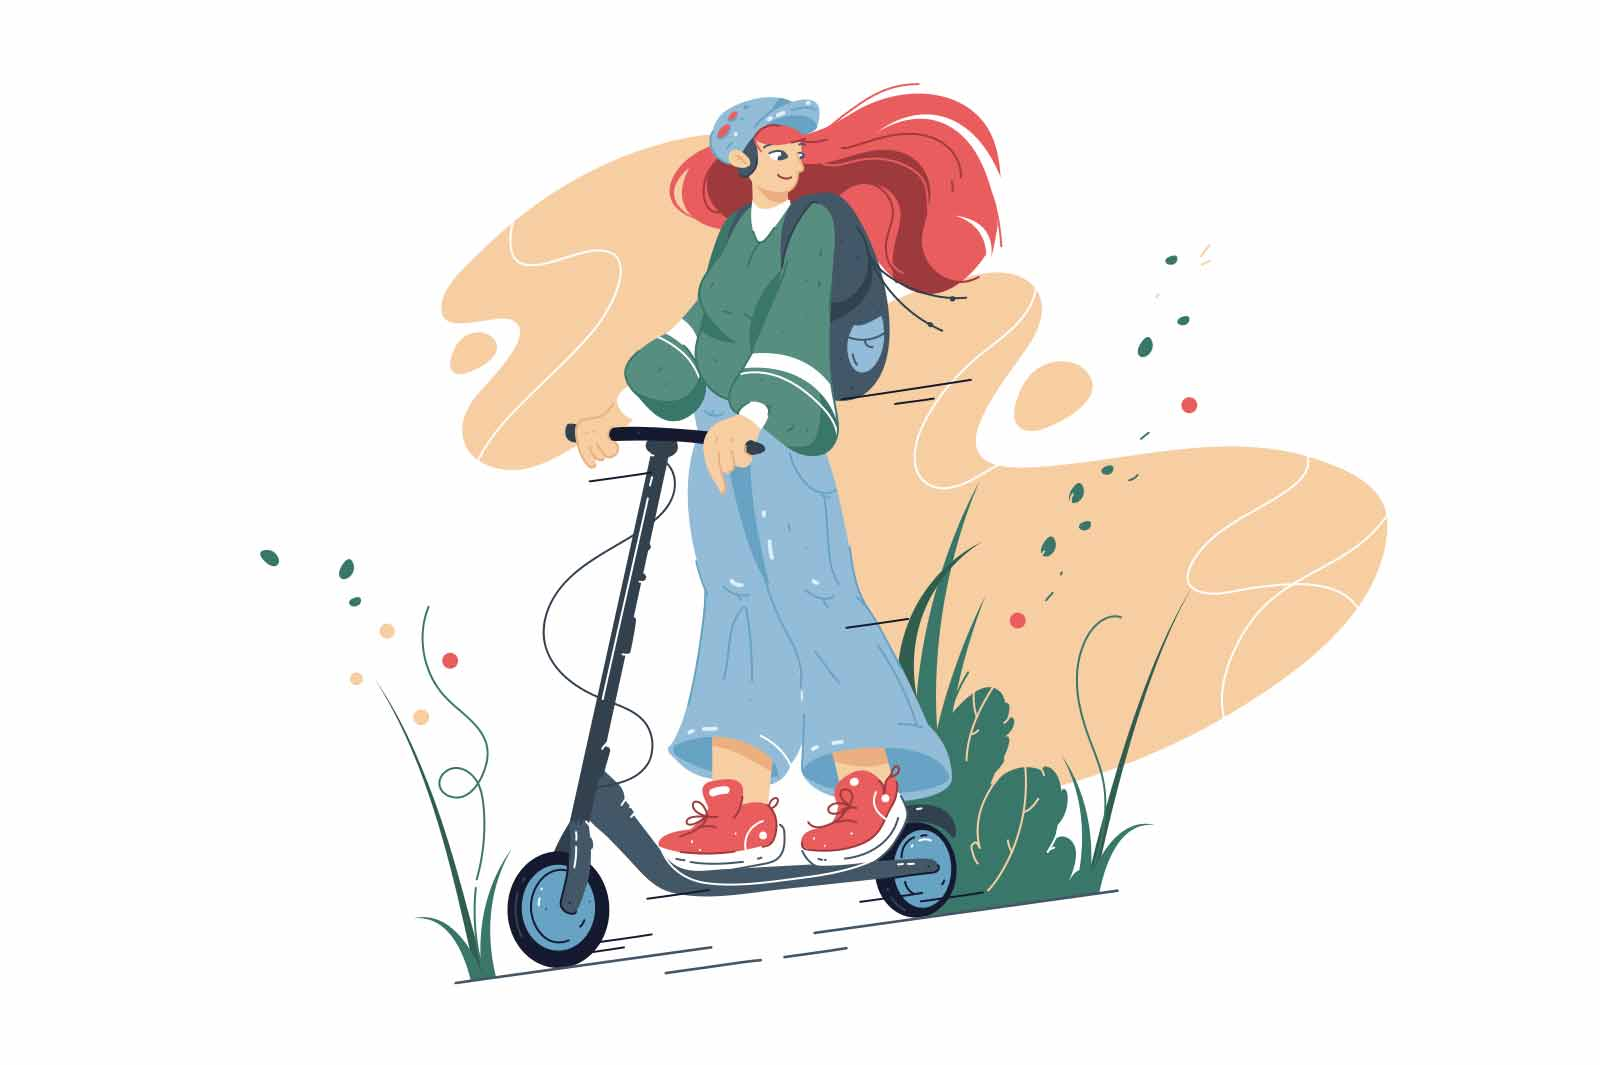 Smiling girl riding on electric scooter vector illustration. Happy teenager on scooter flat style concept. Eco-friendly alternative urban transport idea